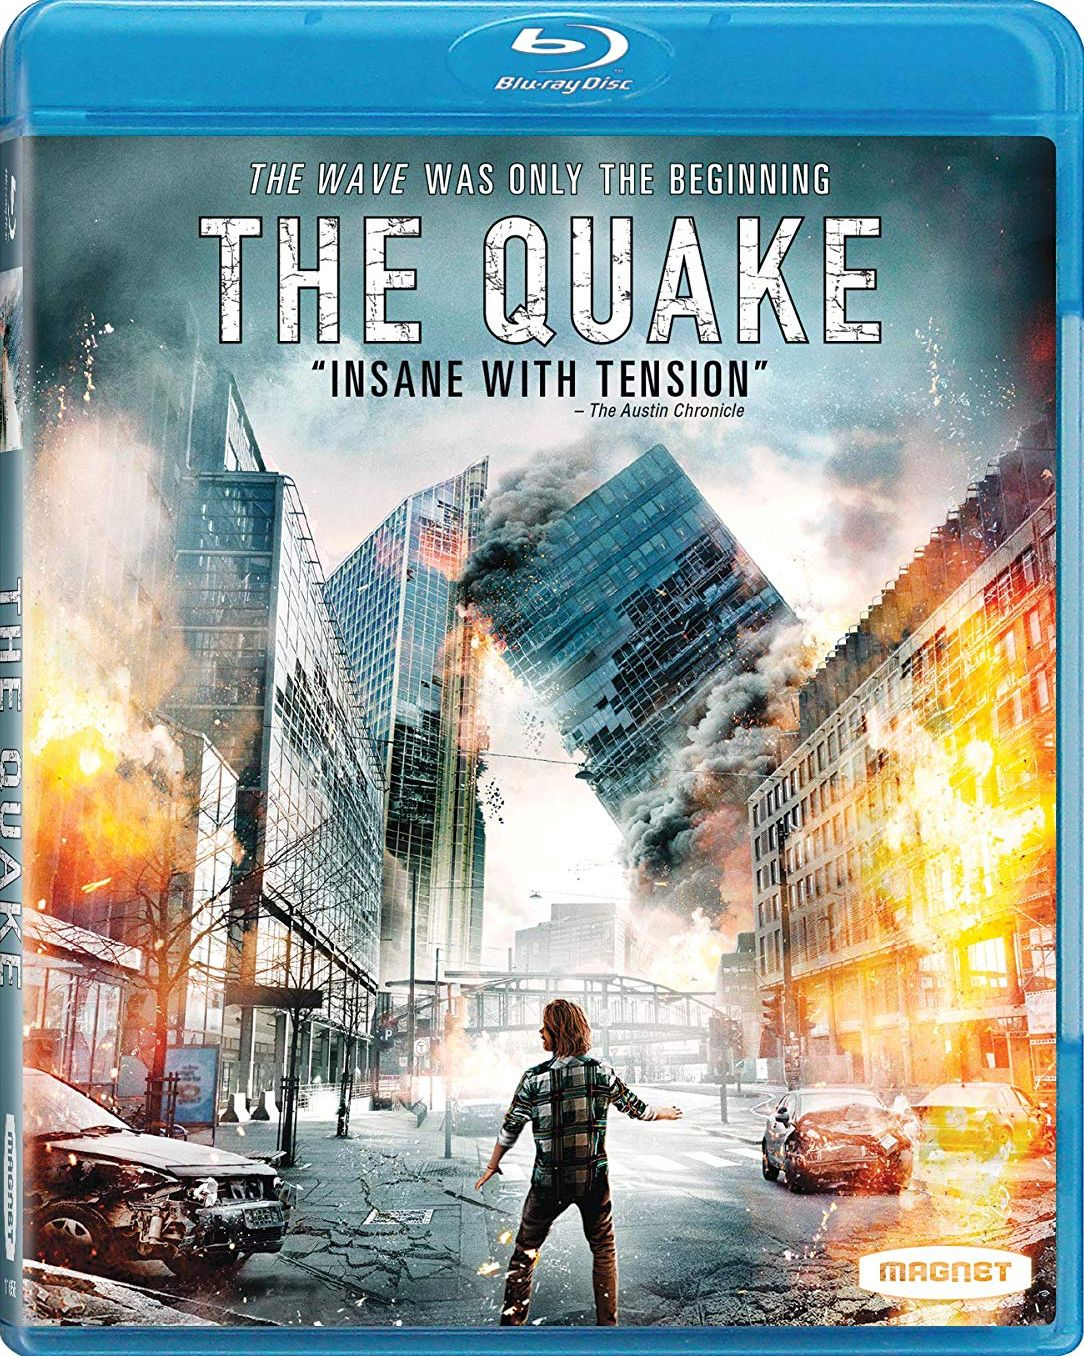 THE QUAKE BLURAY RELEASING) Disaster movie